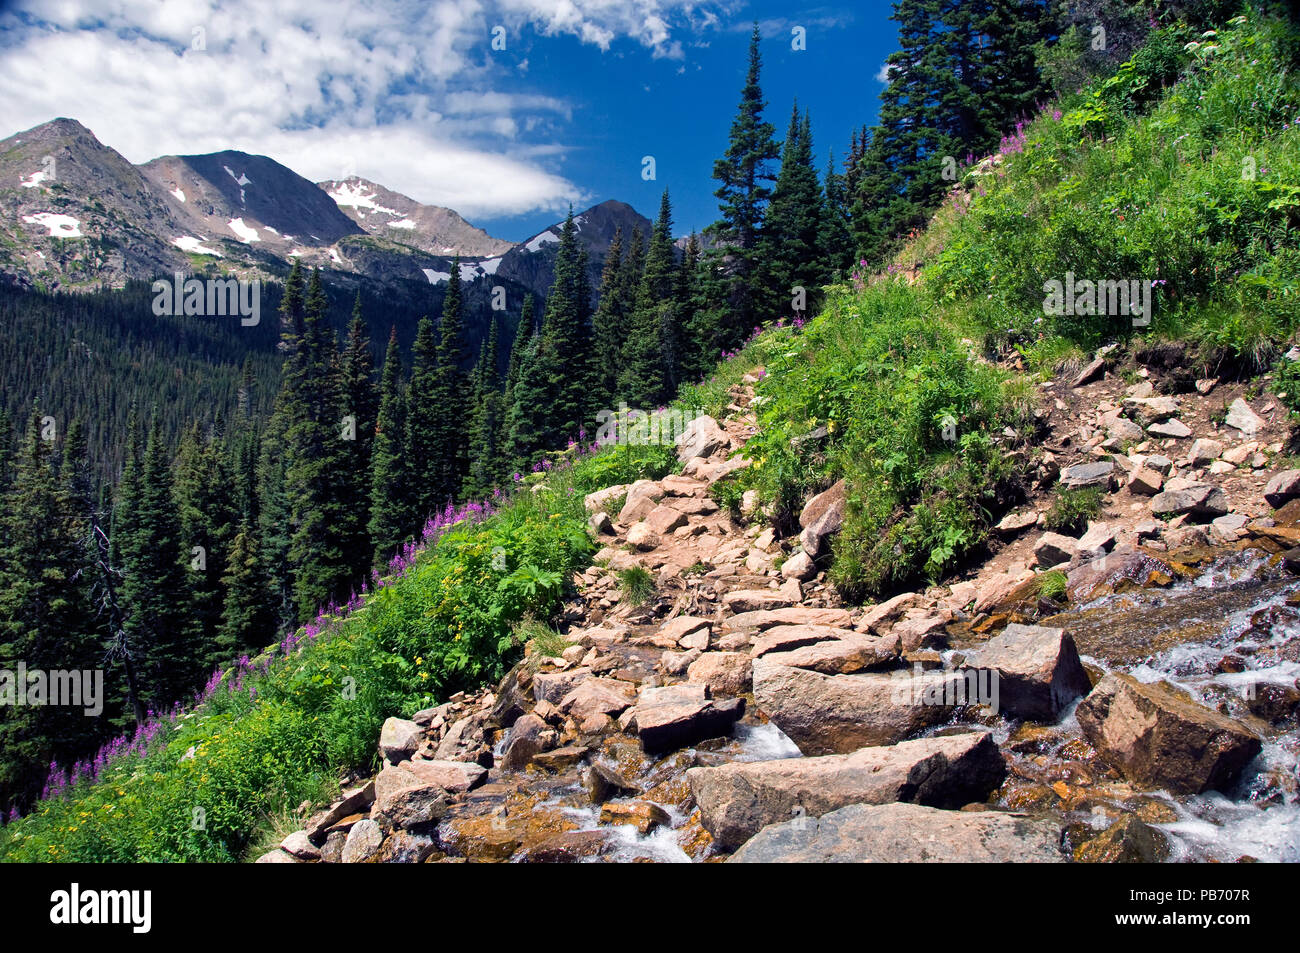 Hiking the 4th of July Trail in the Arapaho National Forest - Stock Image